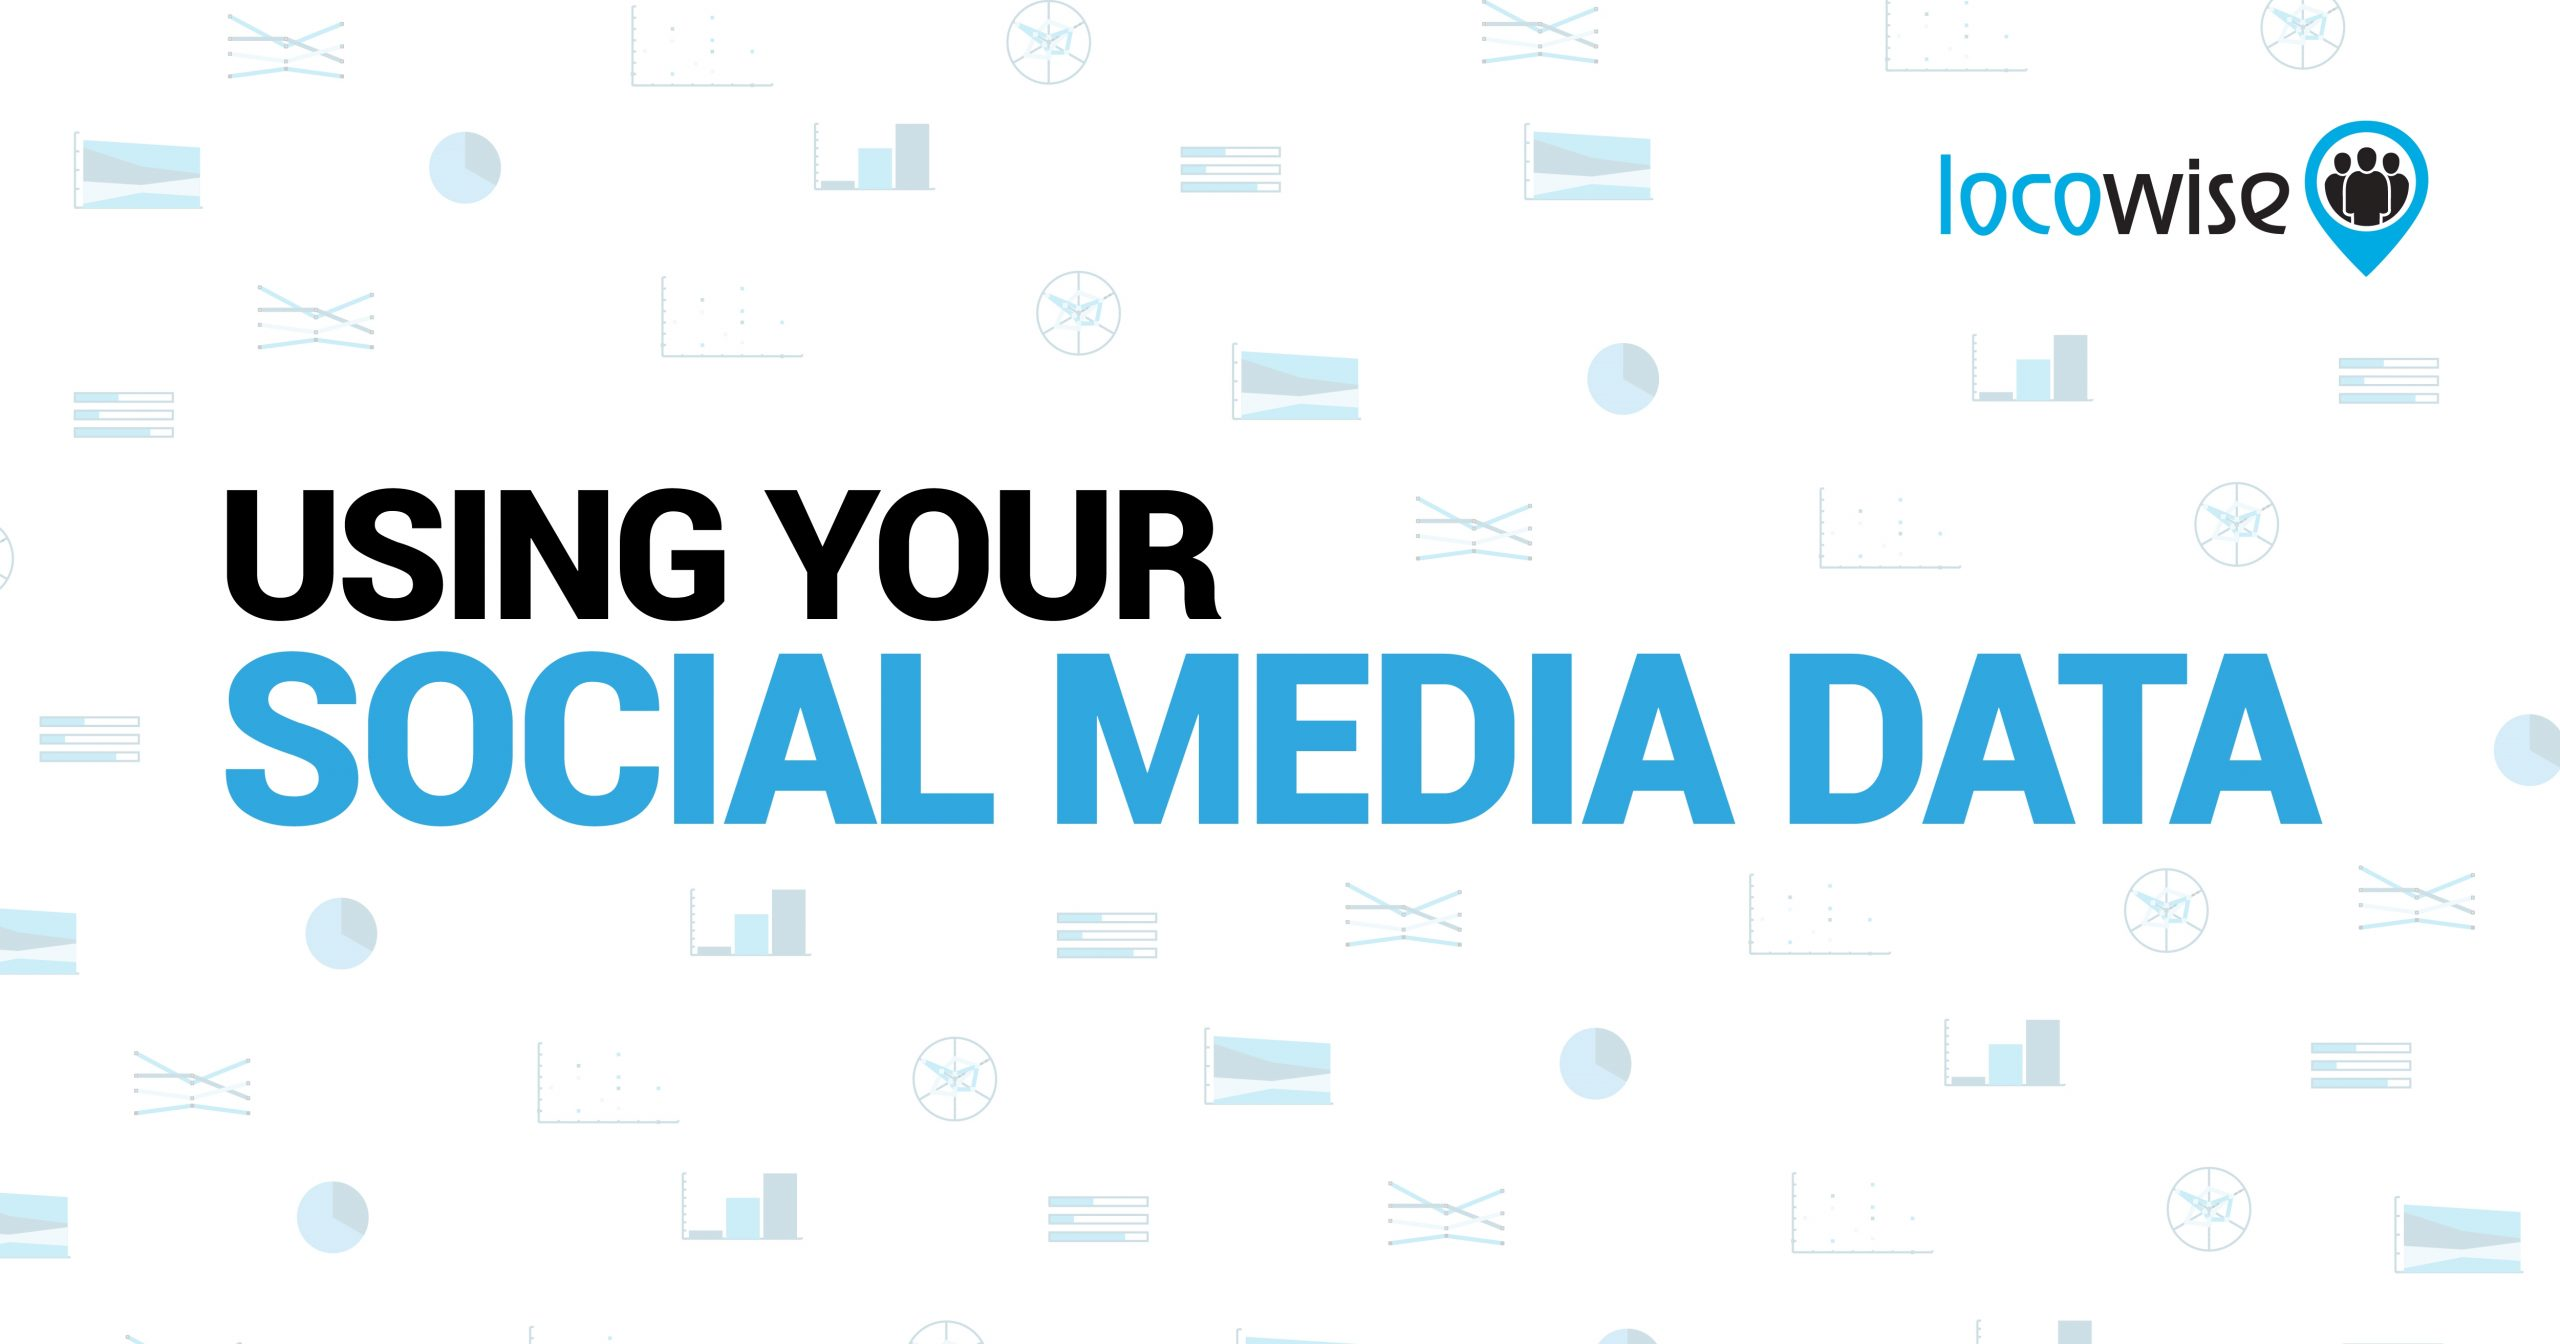 You Have Your Social Media Data. Now What?